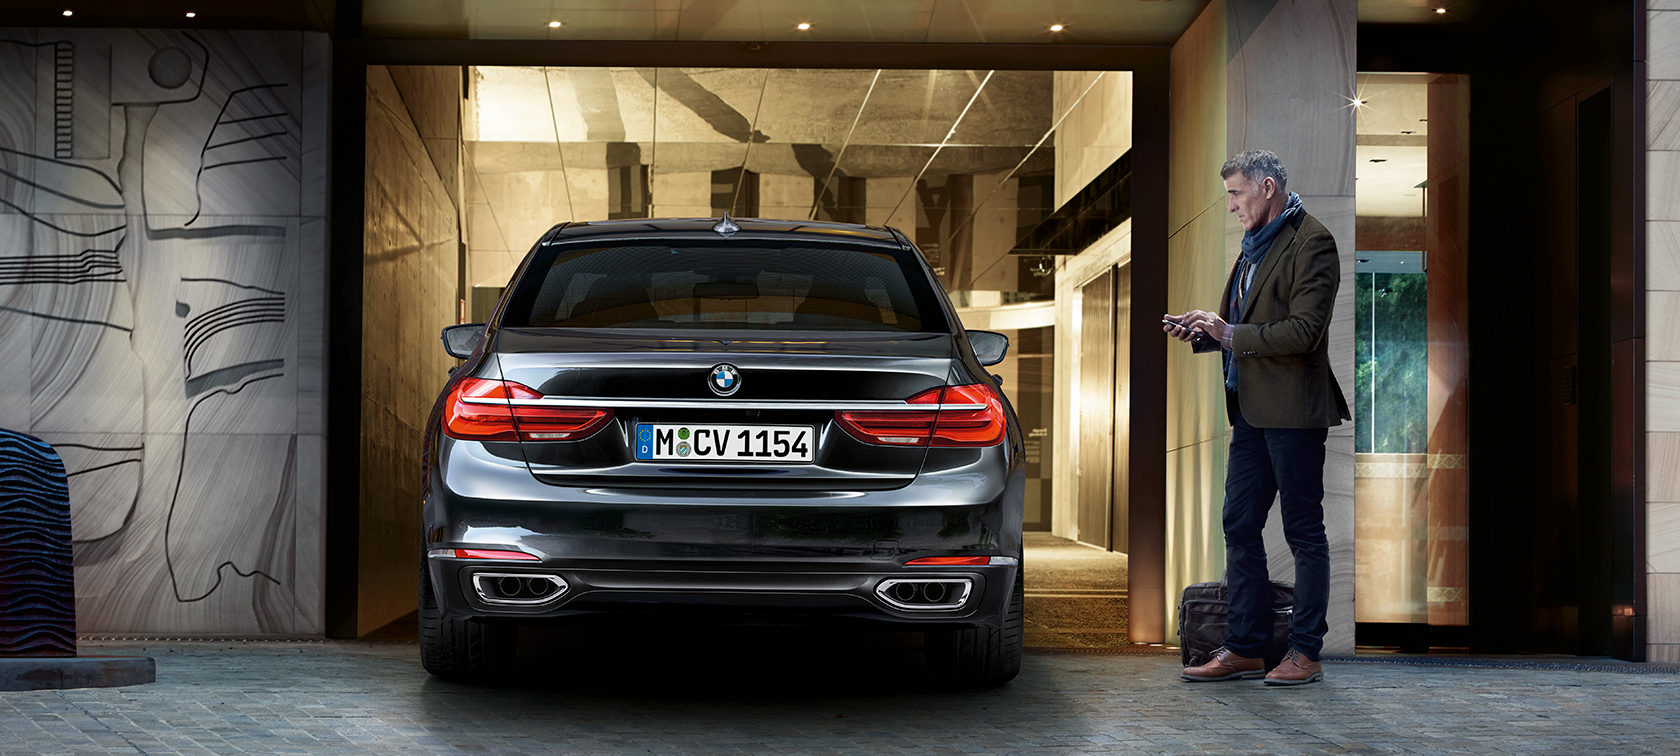 BMW 7-Series Sedan back view: opening car